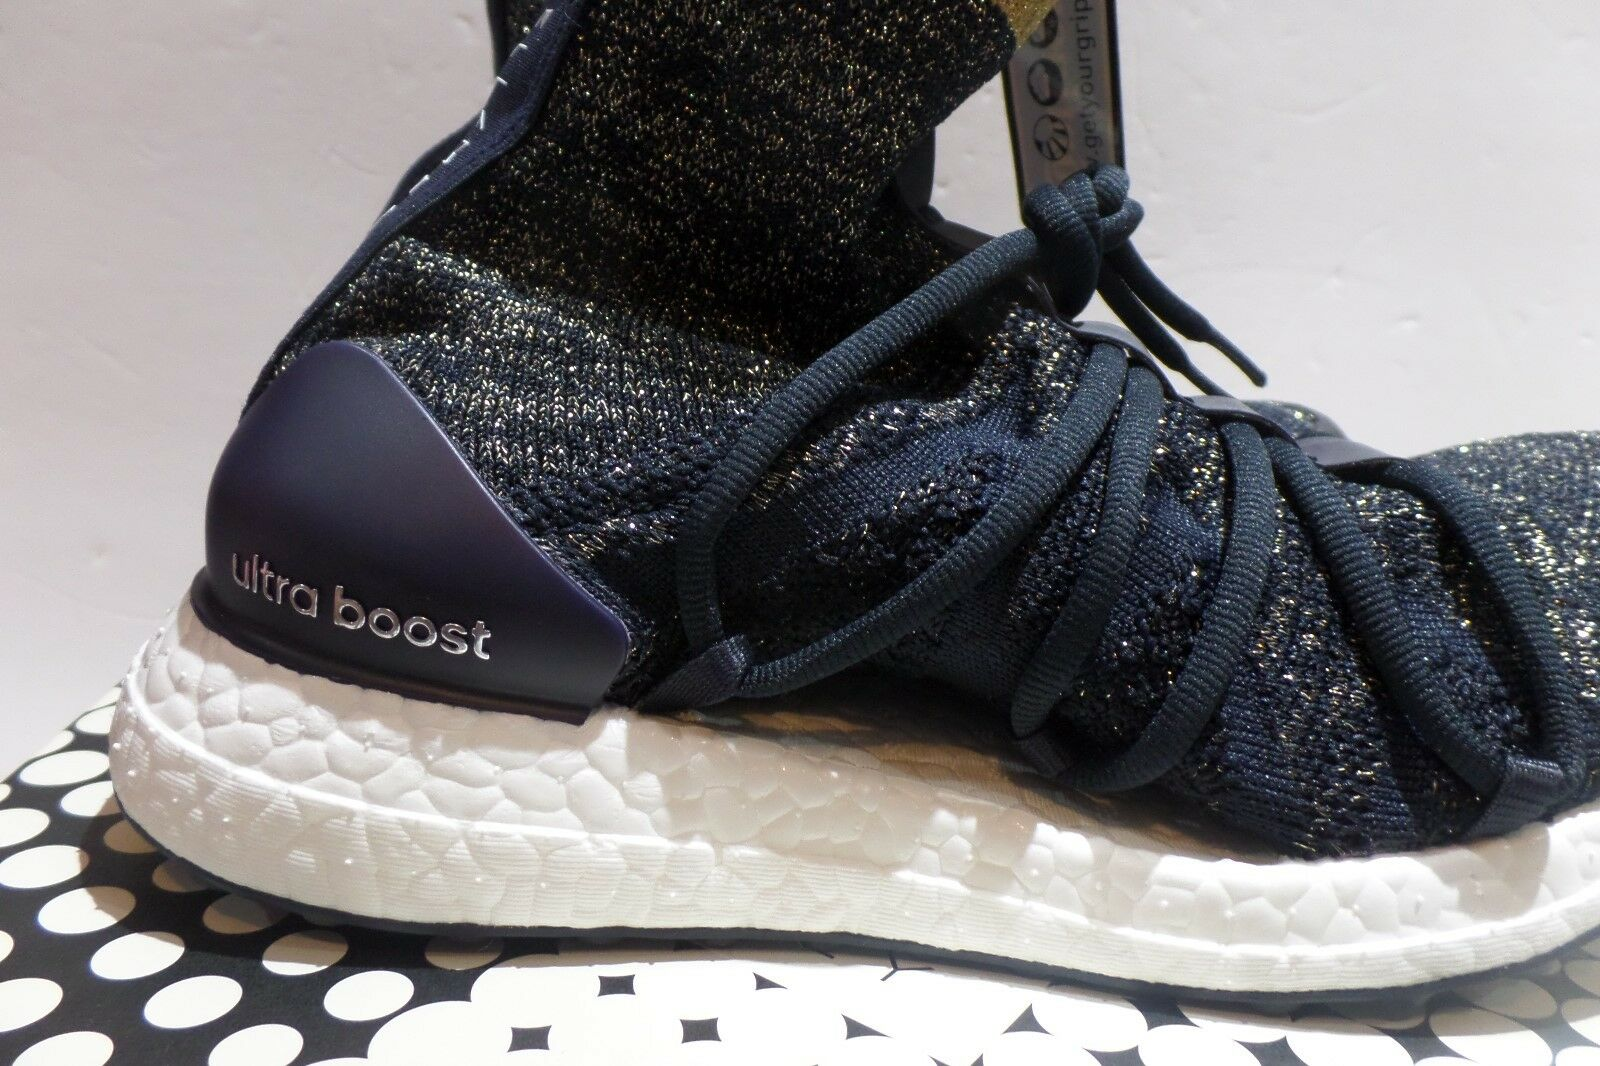 New Women's ADIDAS Ultraboost X Mid BY1834 Stella McCartney Ultra Boost Price reduction Seasonal price cuts, discount benefits